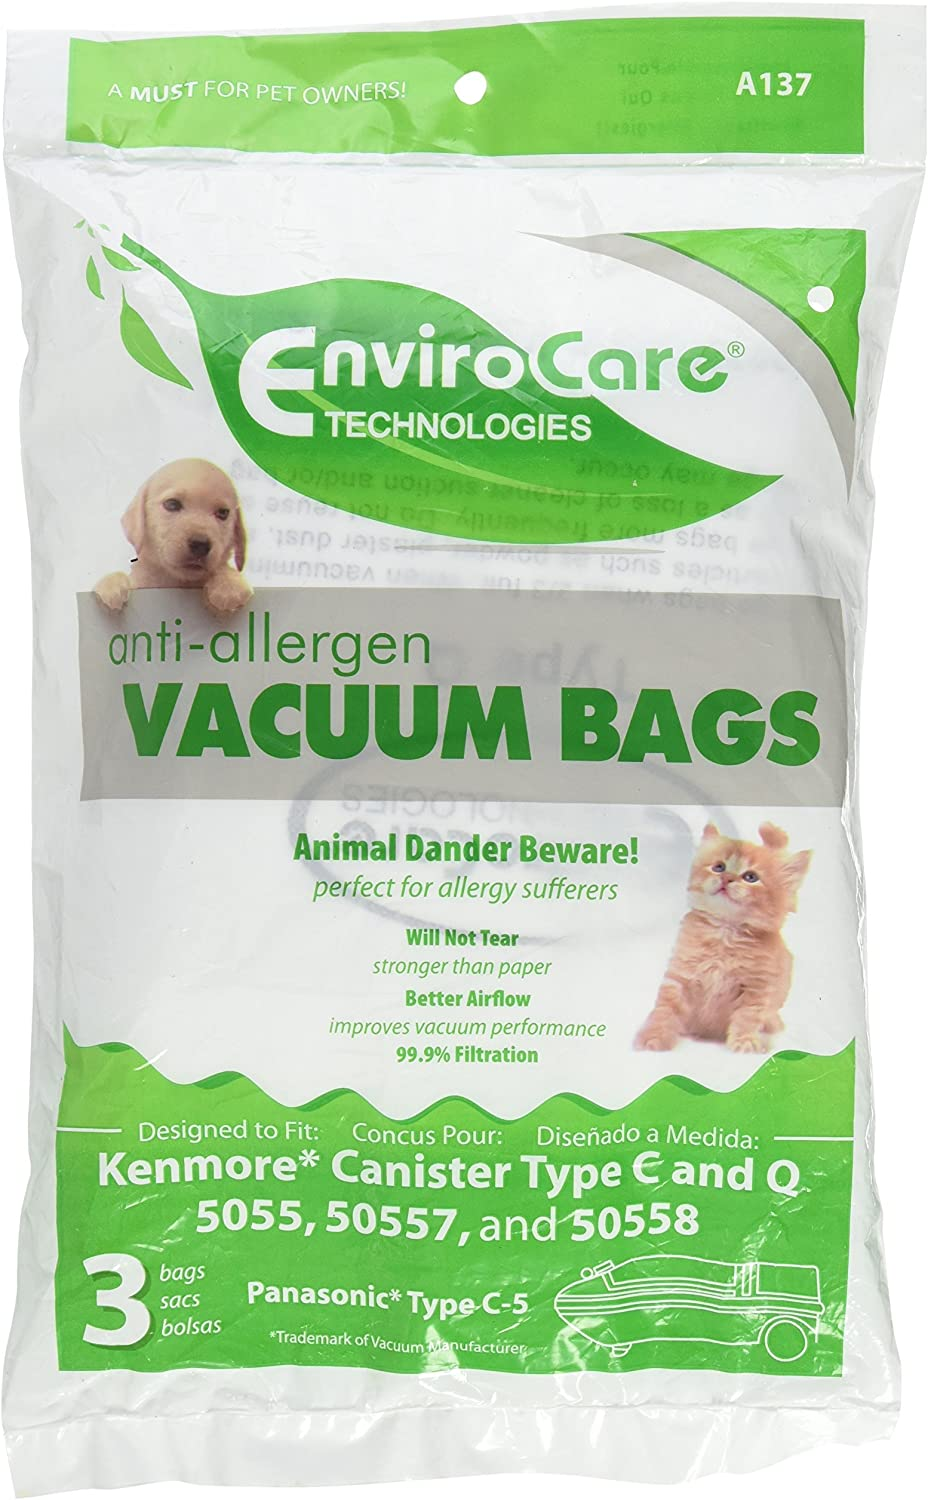 50558 50557 and Panasonic Type C-5 6 pack Envirocare Replacement Allergen Vacuum Bags for Kenmore Canister Type C and Q 50555